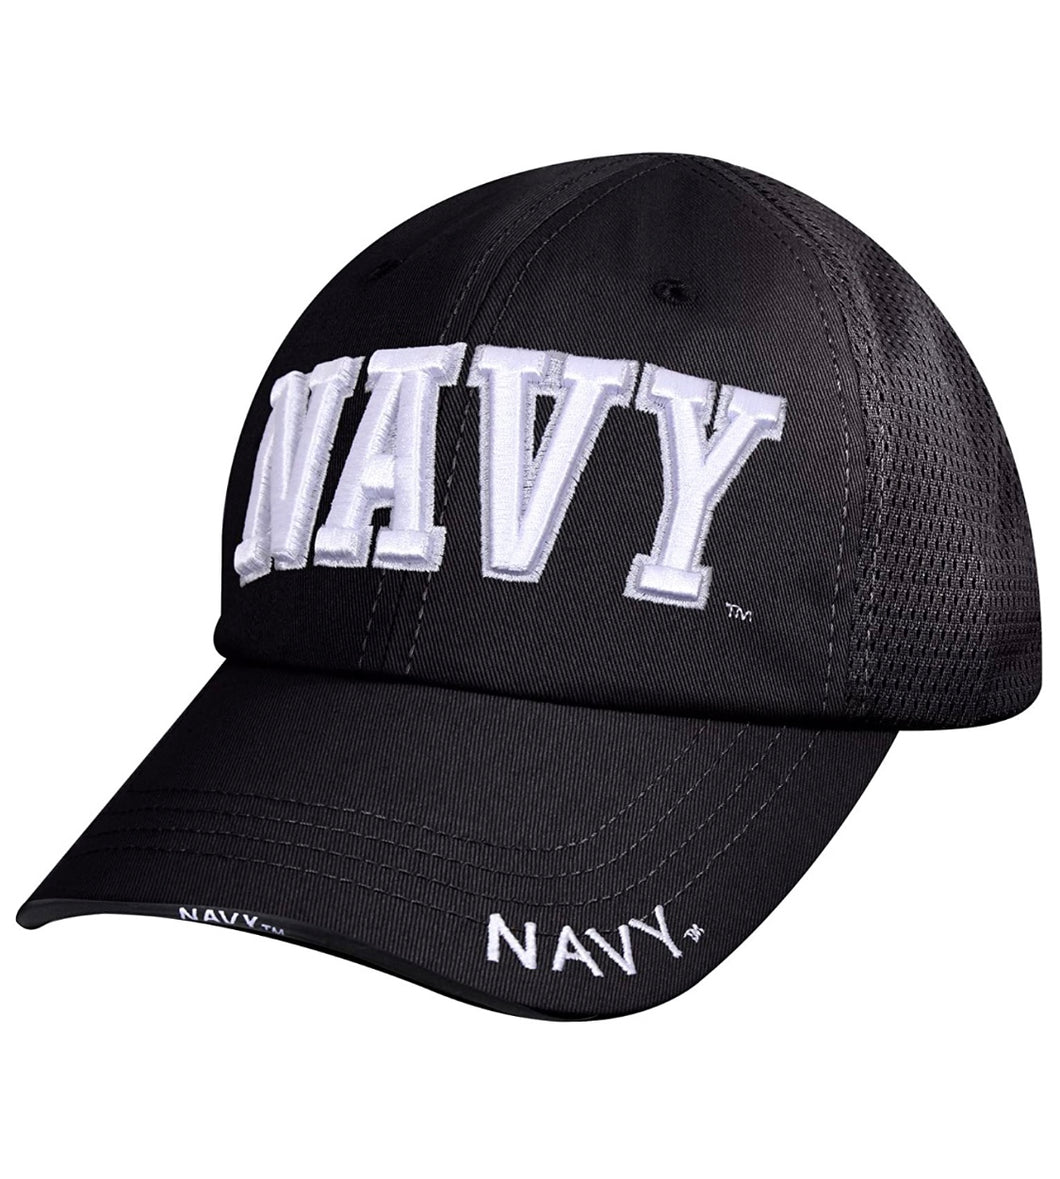 Navy Mesh Back Tactical Cap Black with White Lettering One Size Fits All